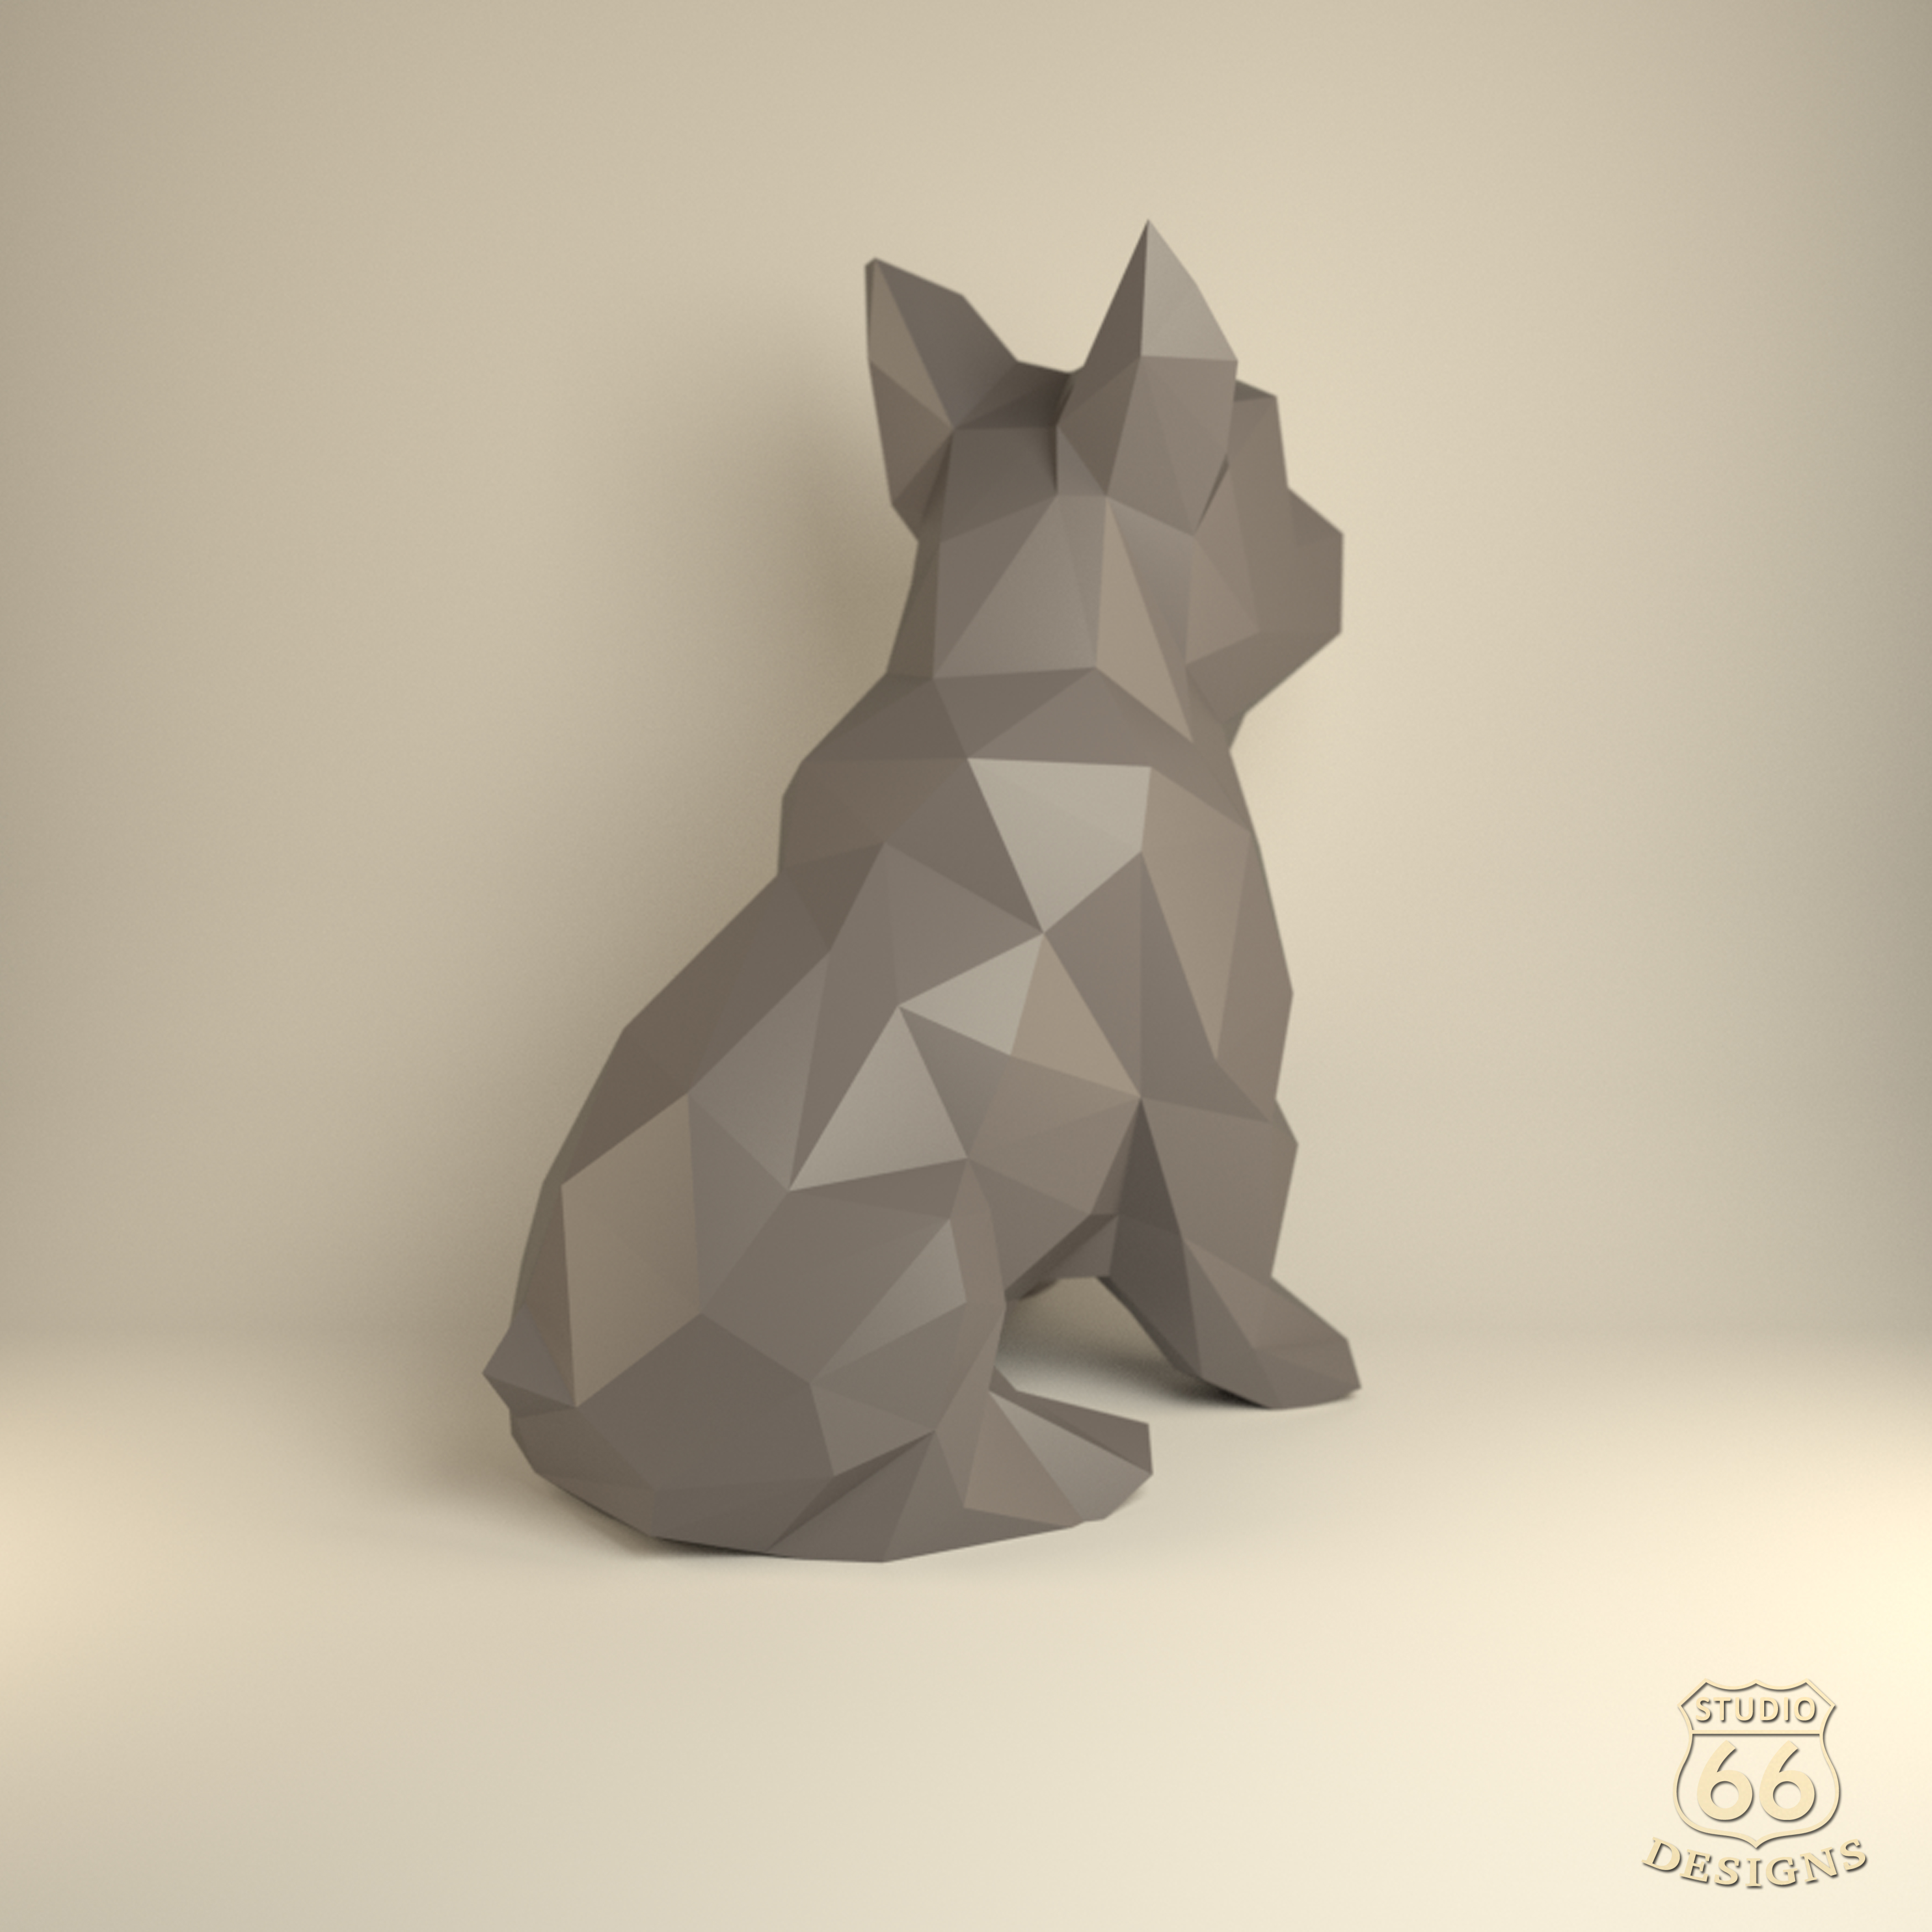 French Bulldog, Papercraft Bulldog, Paper Dog, Paper Animals, Papertoy, Home Decor, Frenchie, 3D papercraft model, lowpoly DIY, hobby idea example image 4